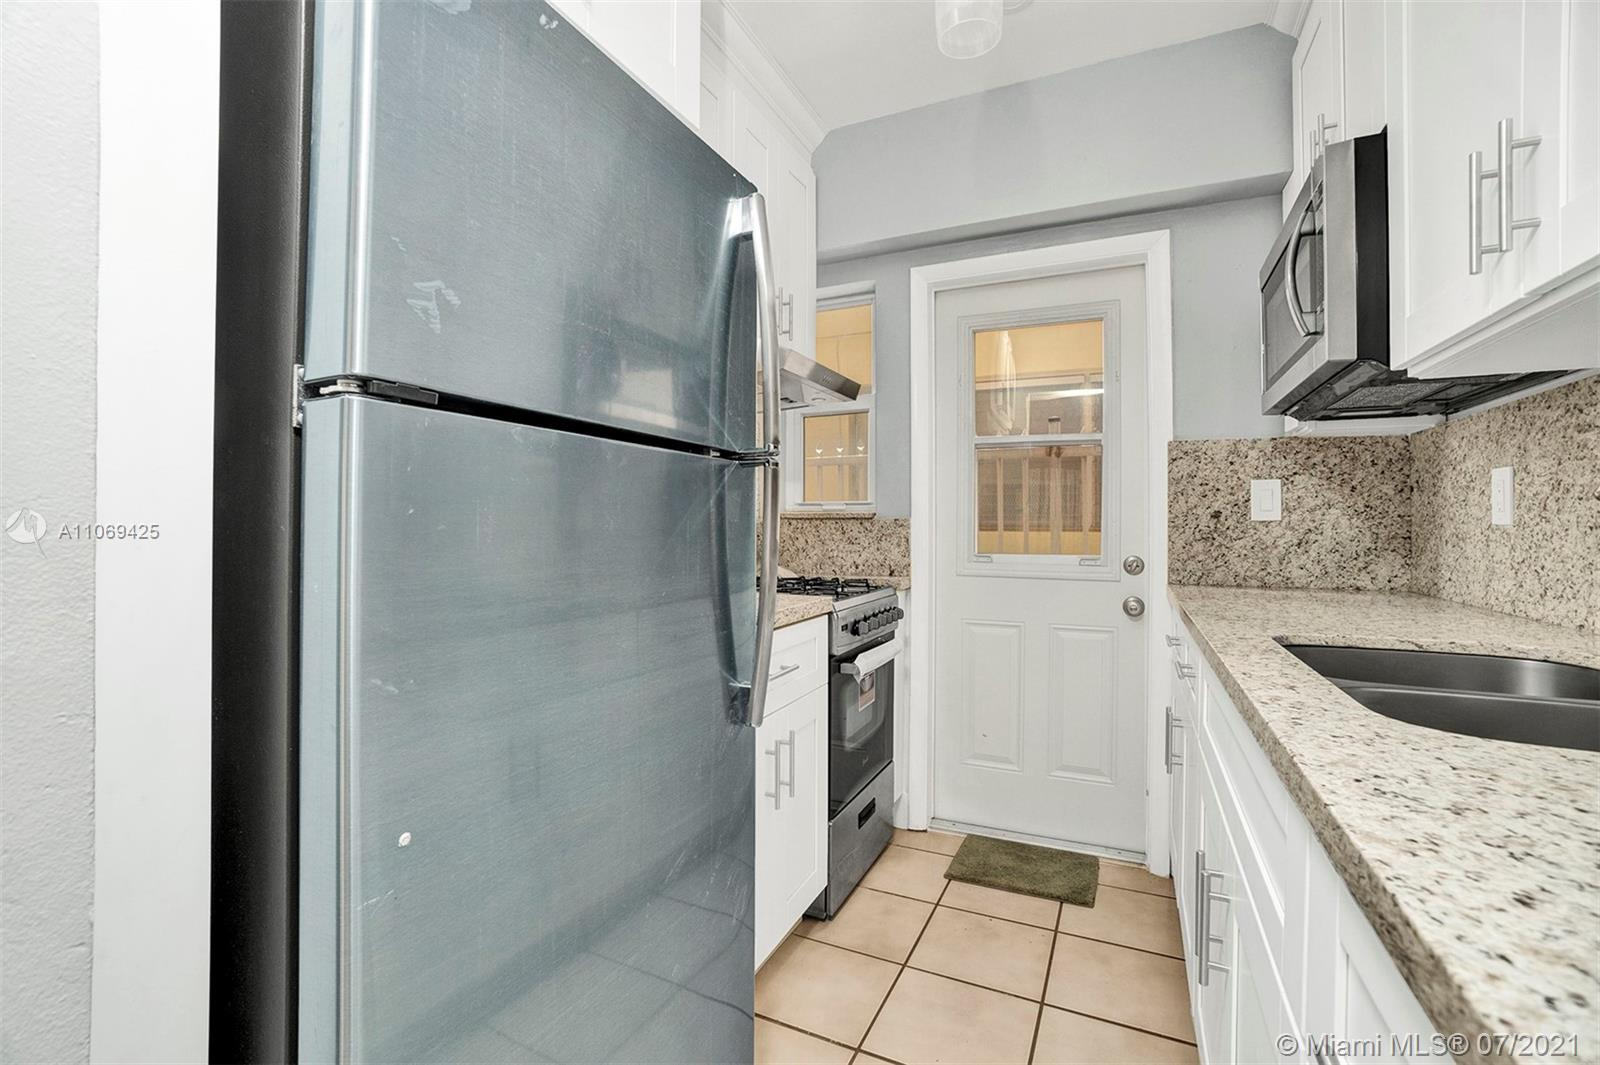 644  Meridian Ave #2 For Sale A11069425, FL